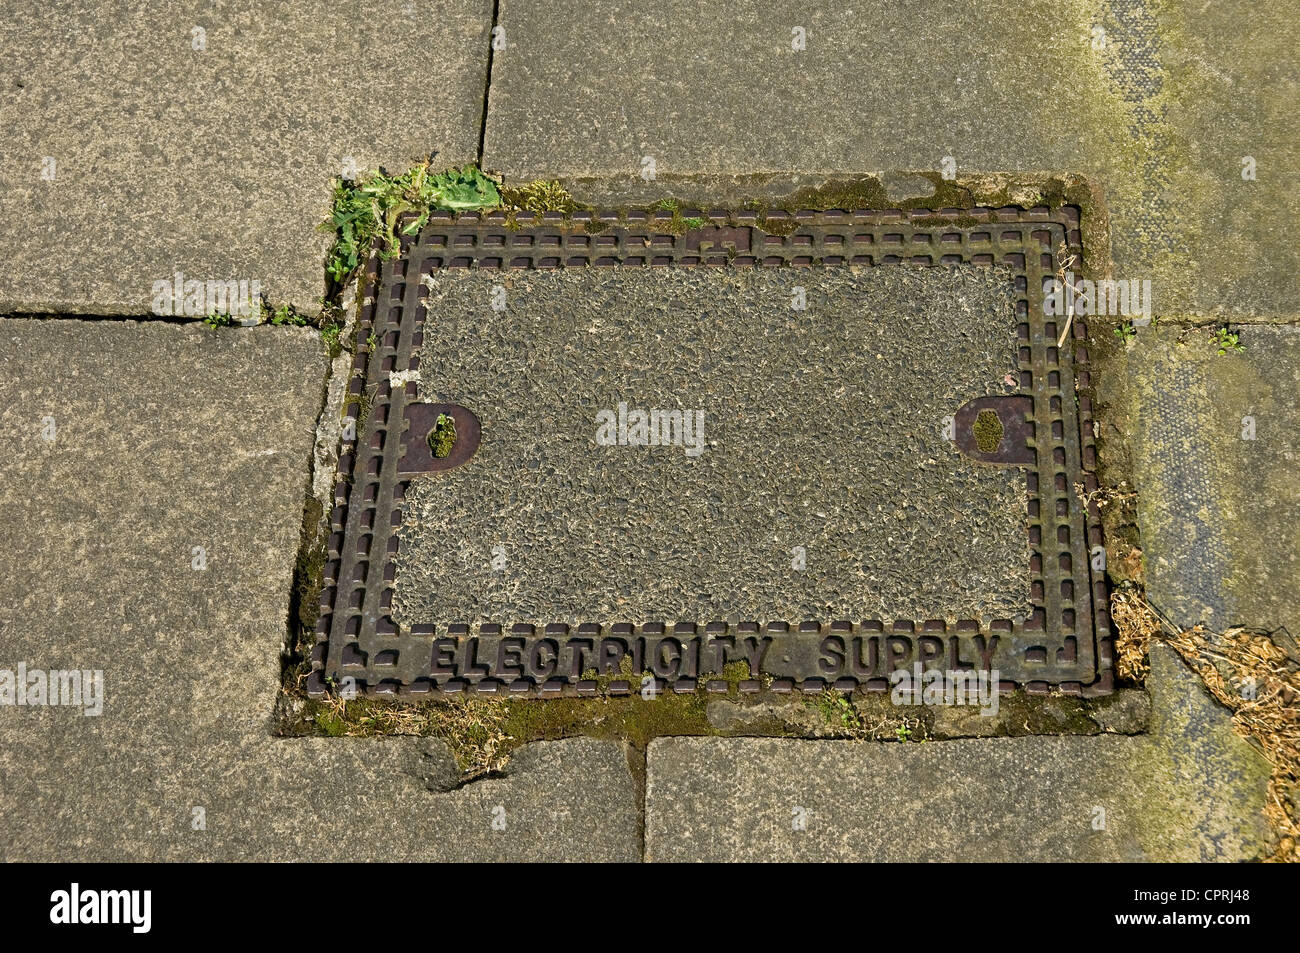 Manhole inspection lid cover set in pavement England UK United Kingdom GB Great Britain - Stock Image